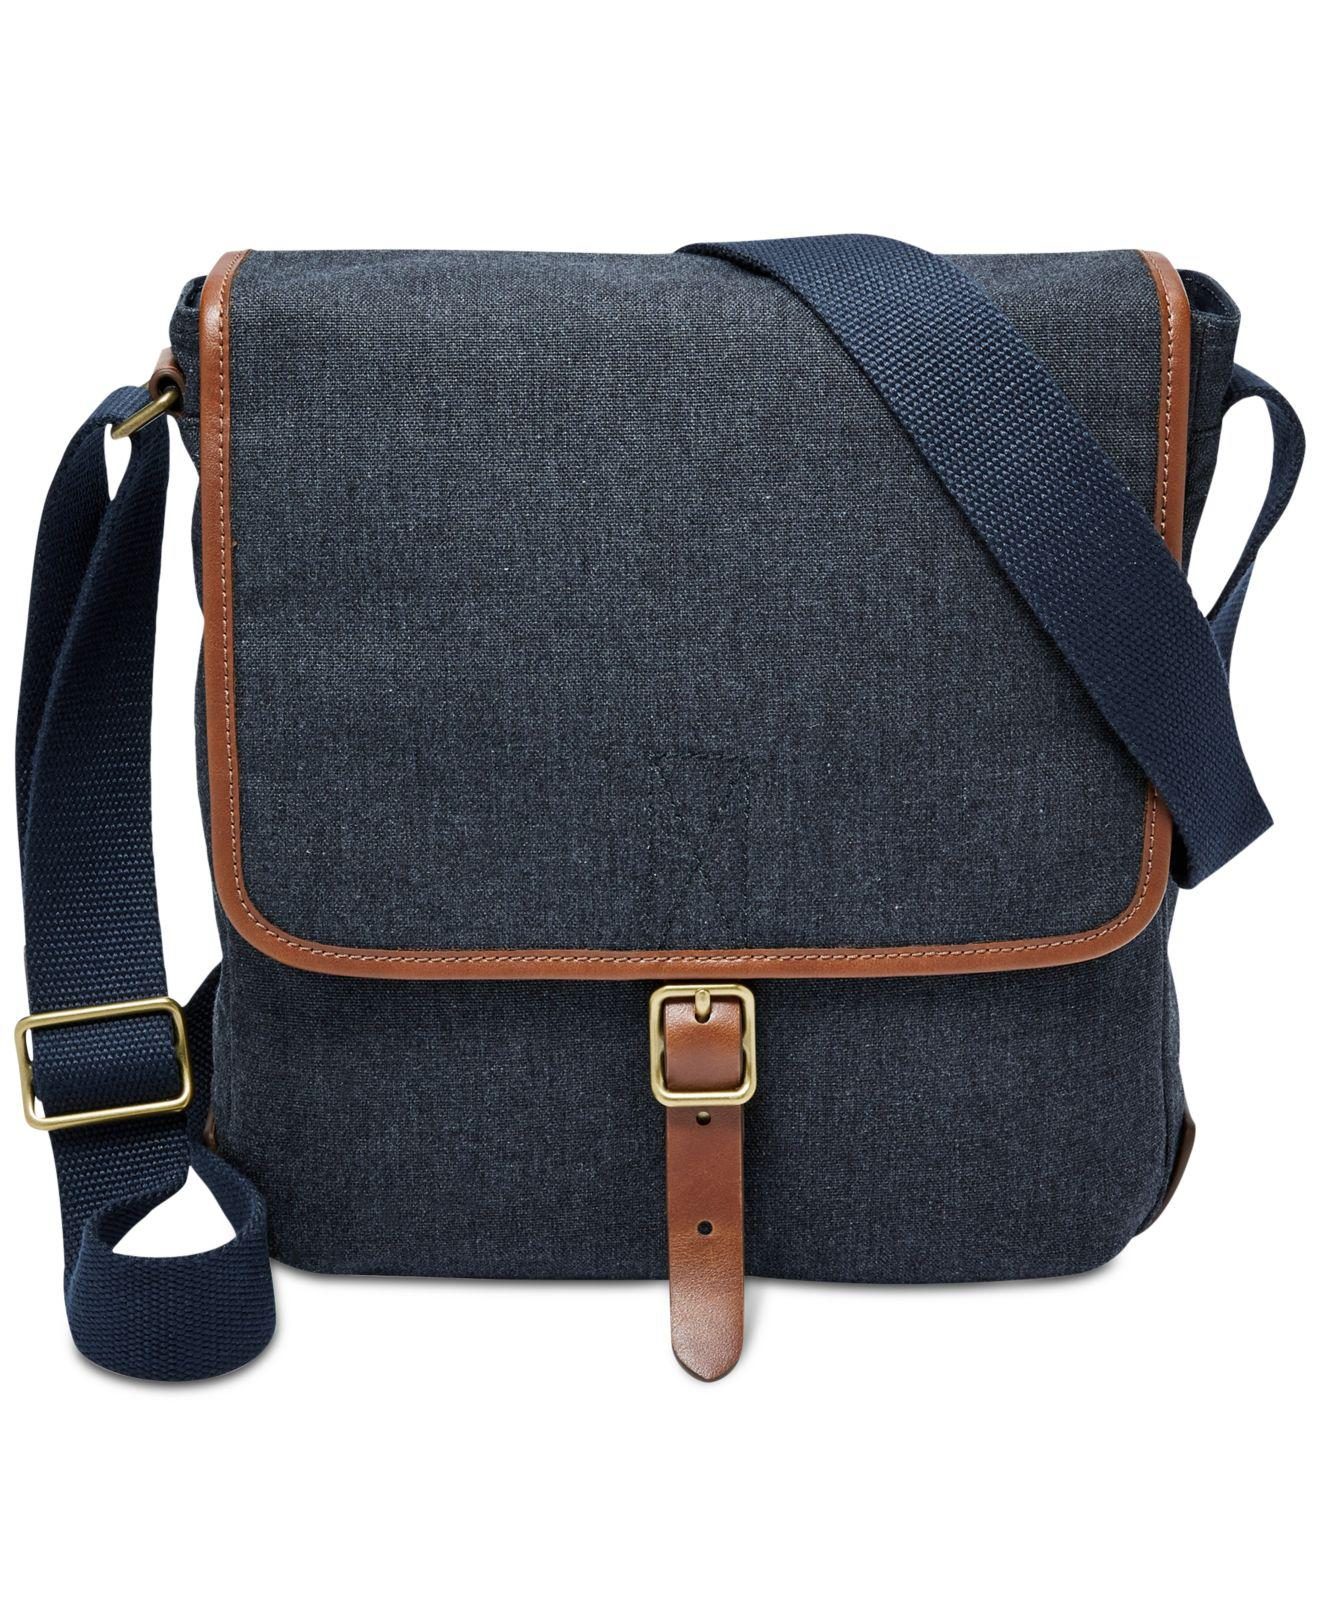 Free Shipping Inexpensive Buckner Blue Backpack Fossil Footaction Cheap Price 2018 New Sale Online Free Shipping Shopping Online Cost n7viJi